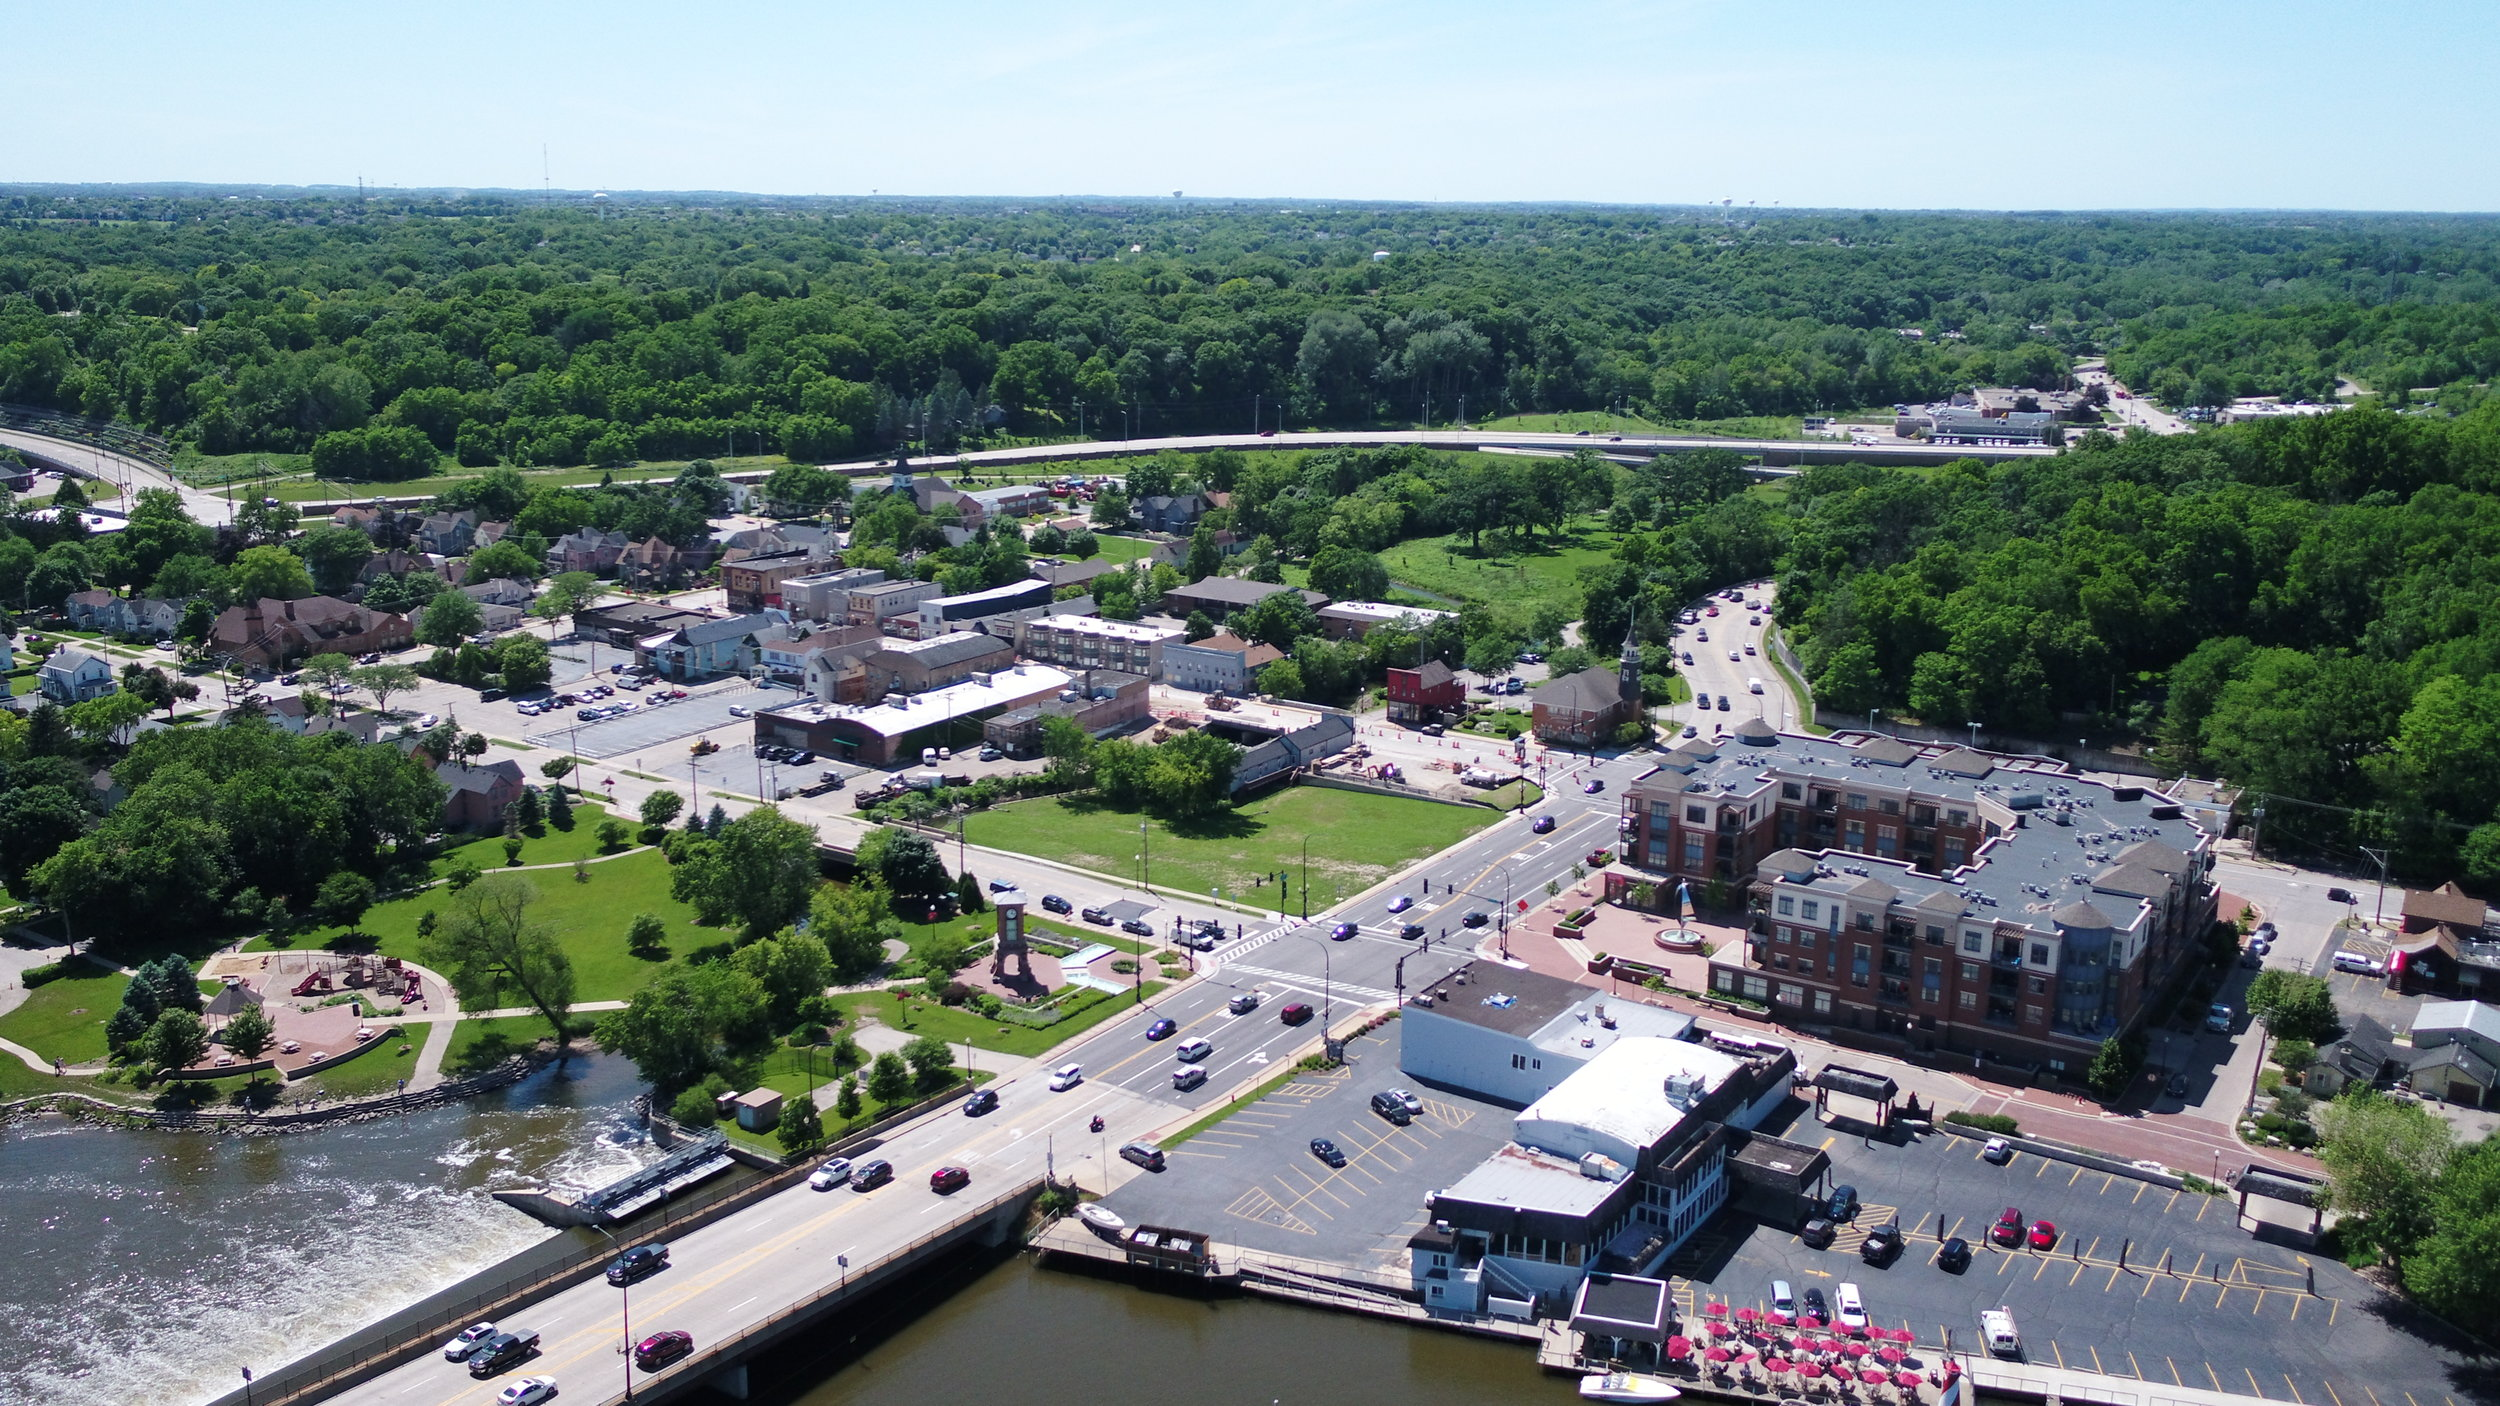 Algonquin Downtown Cultural District viewed from above the Fox River